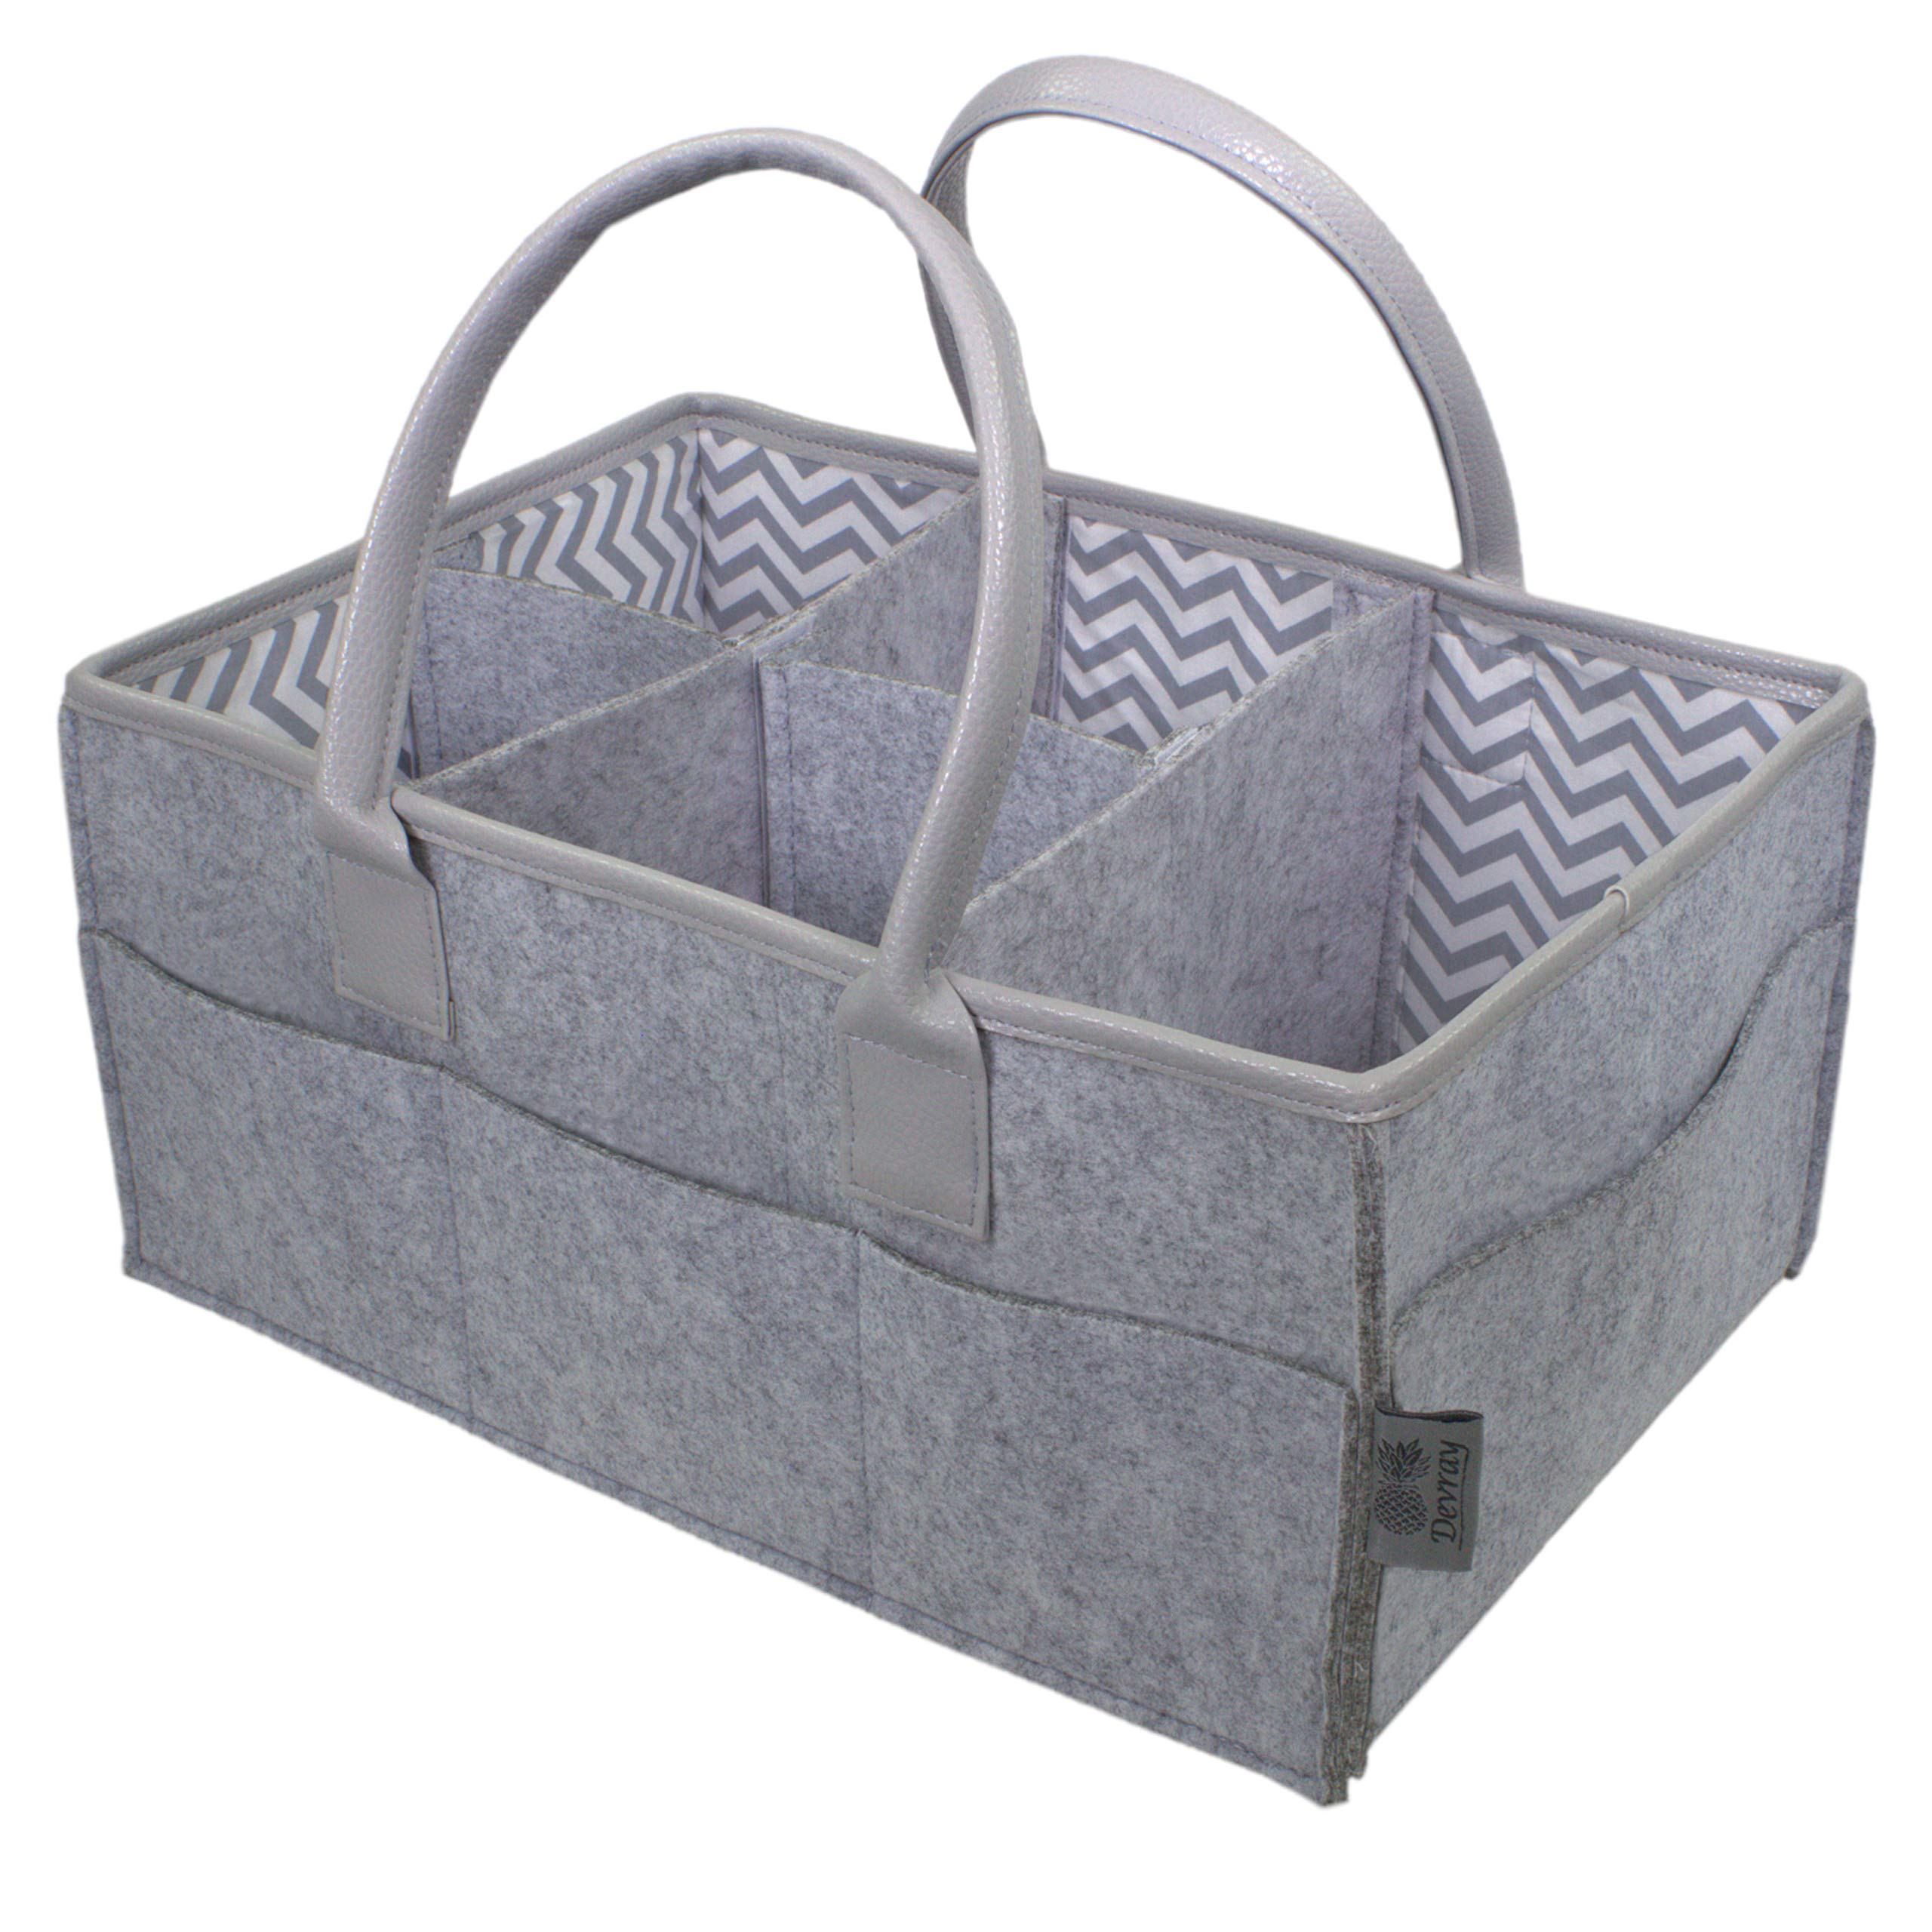 Baby Diaper Caddy Organizer by Devray | Nursery Storage Bin | Grey Leather Pu Handles and Top Trim with 5 Compartments